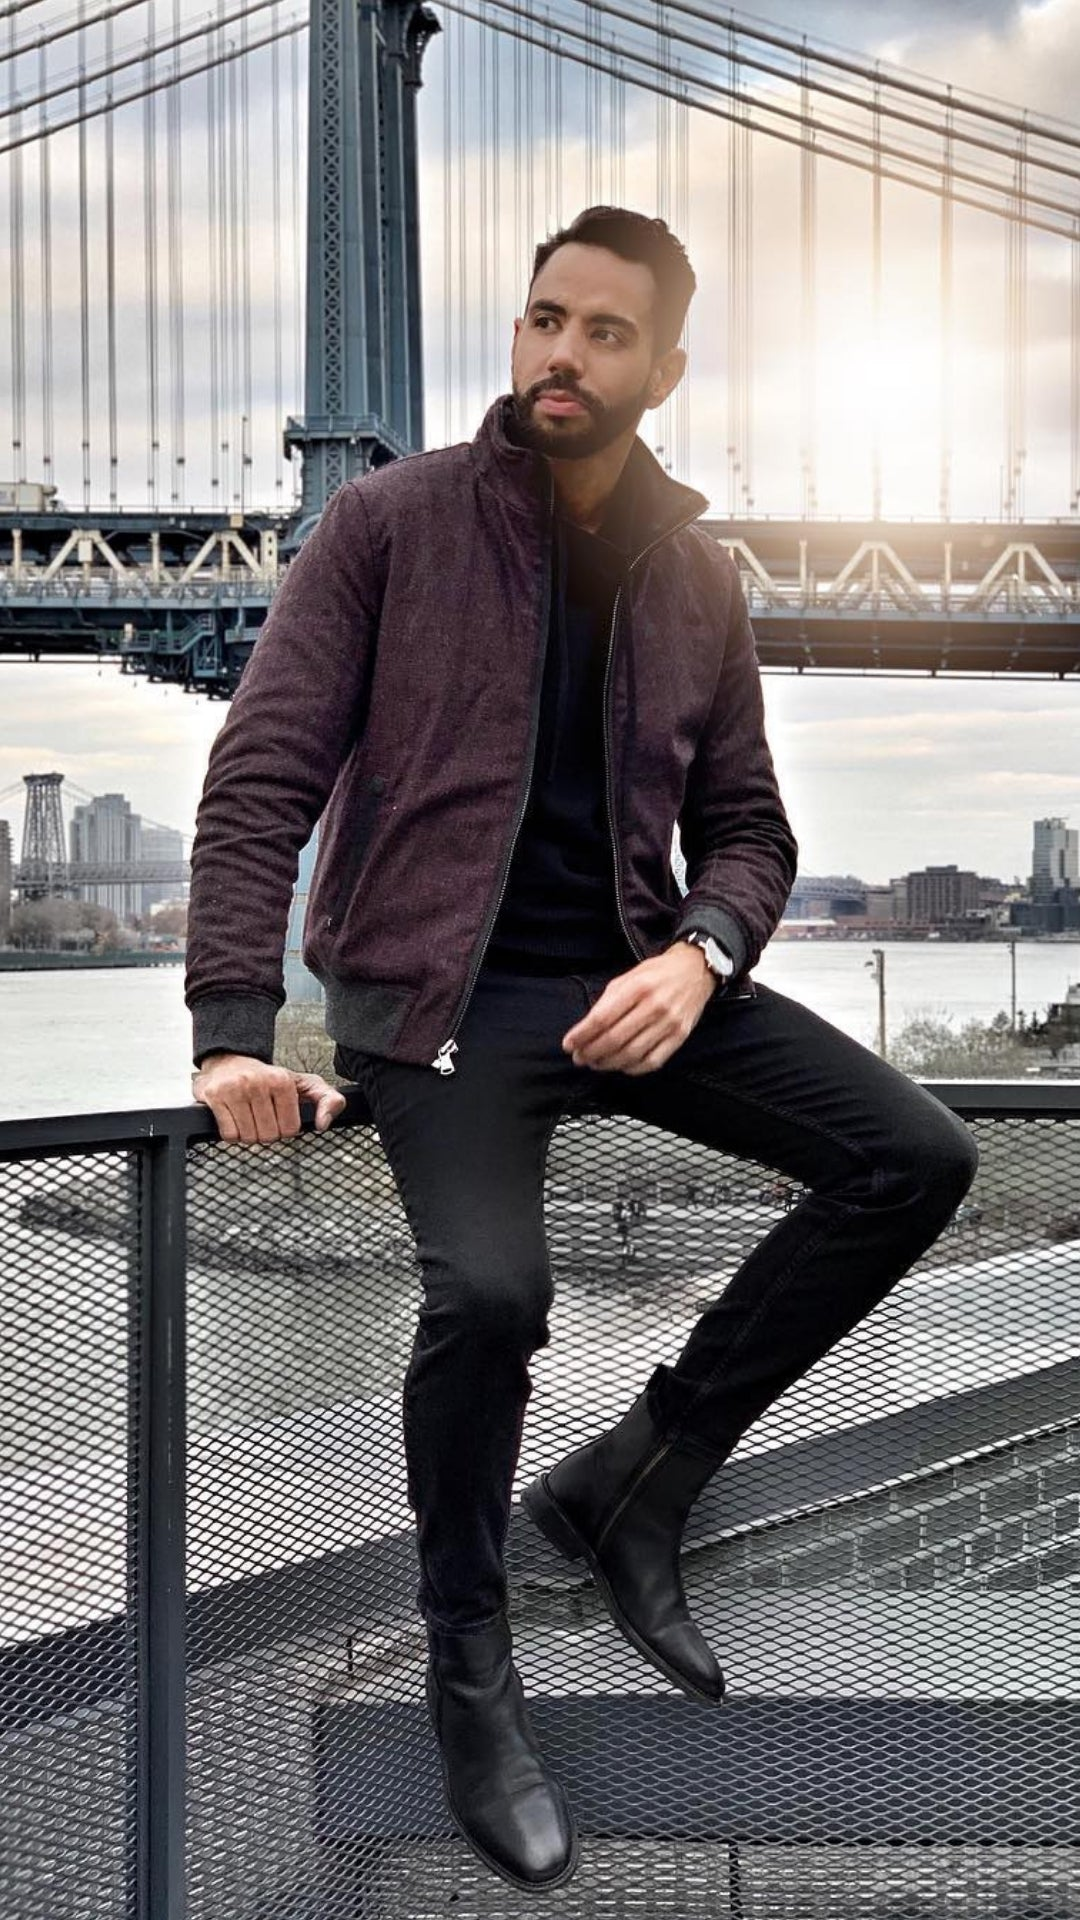 5 Best Street Style Looks To Try In 2019 #streetstyle #casualstyle #mensfashion